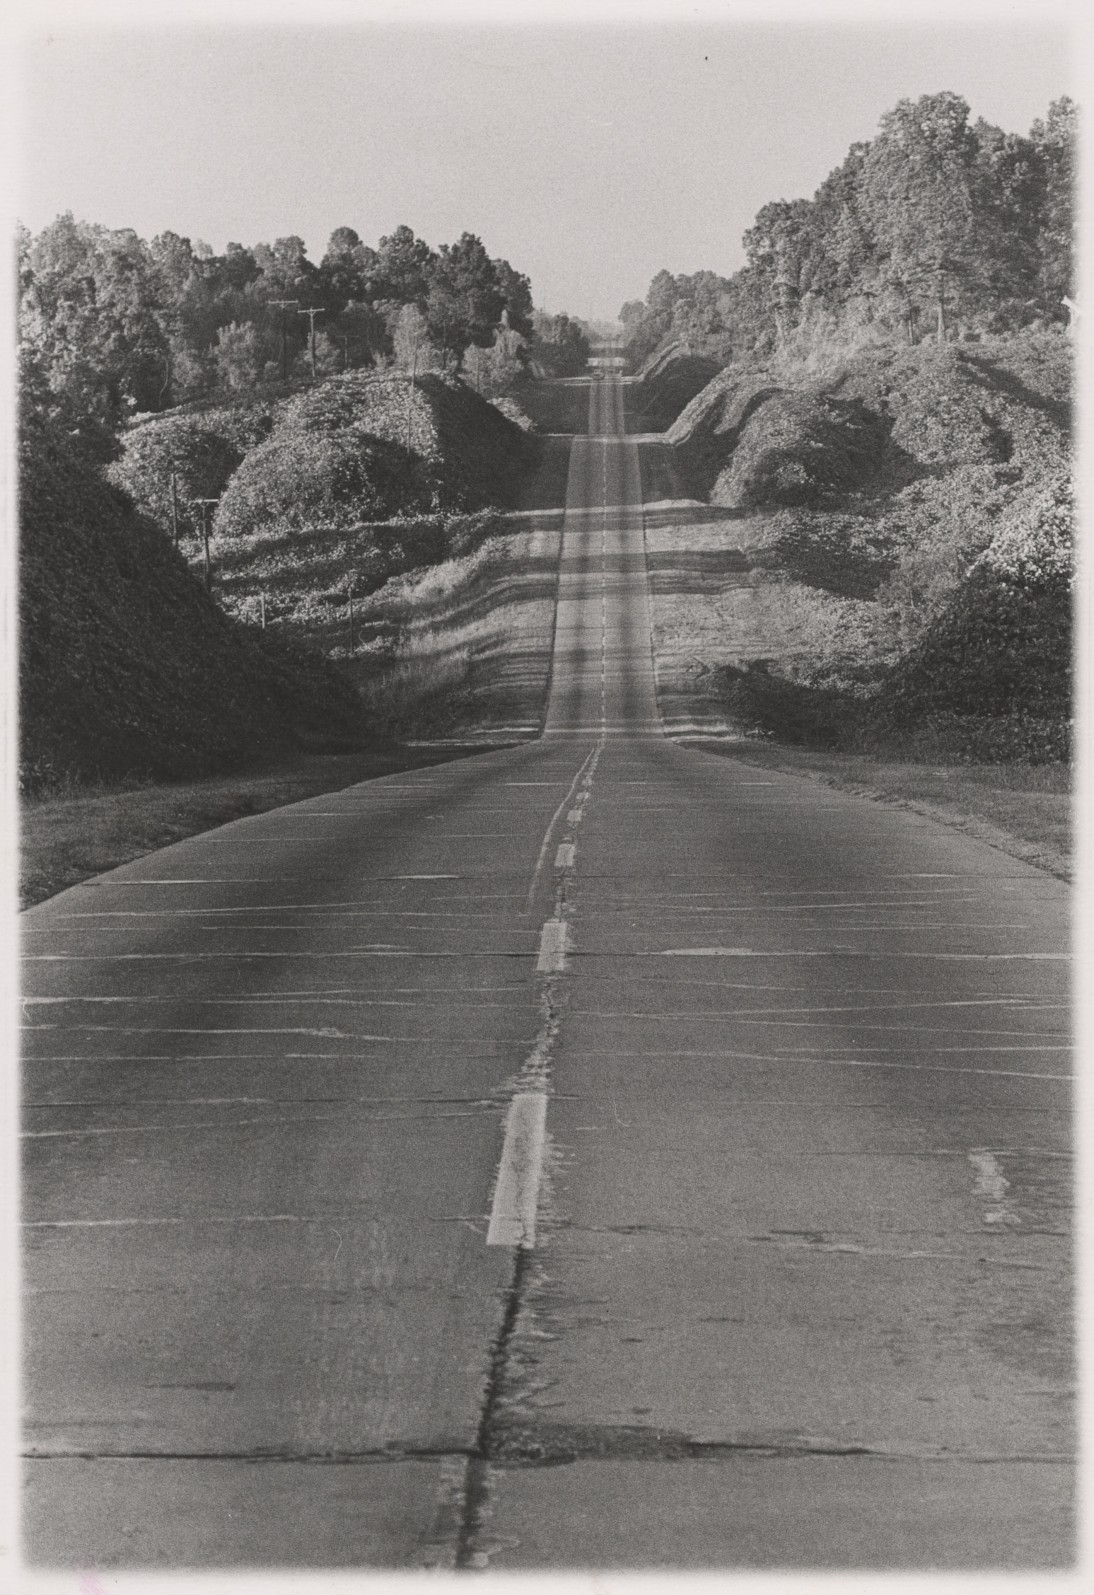 Danny Lyon, The Road to Yazoo City, Mississippi, 1964